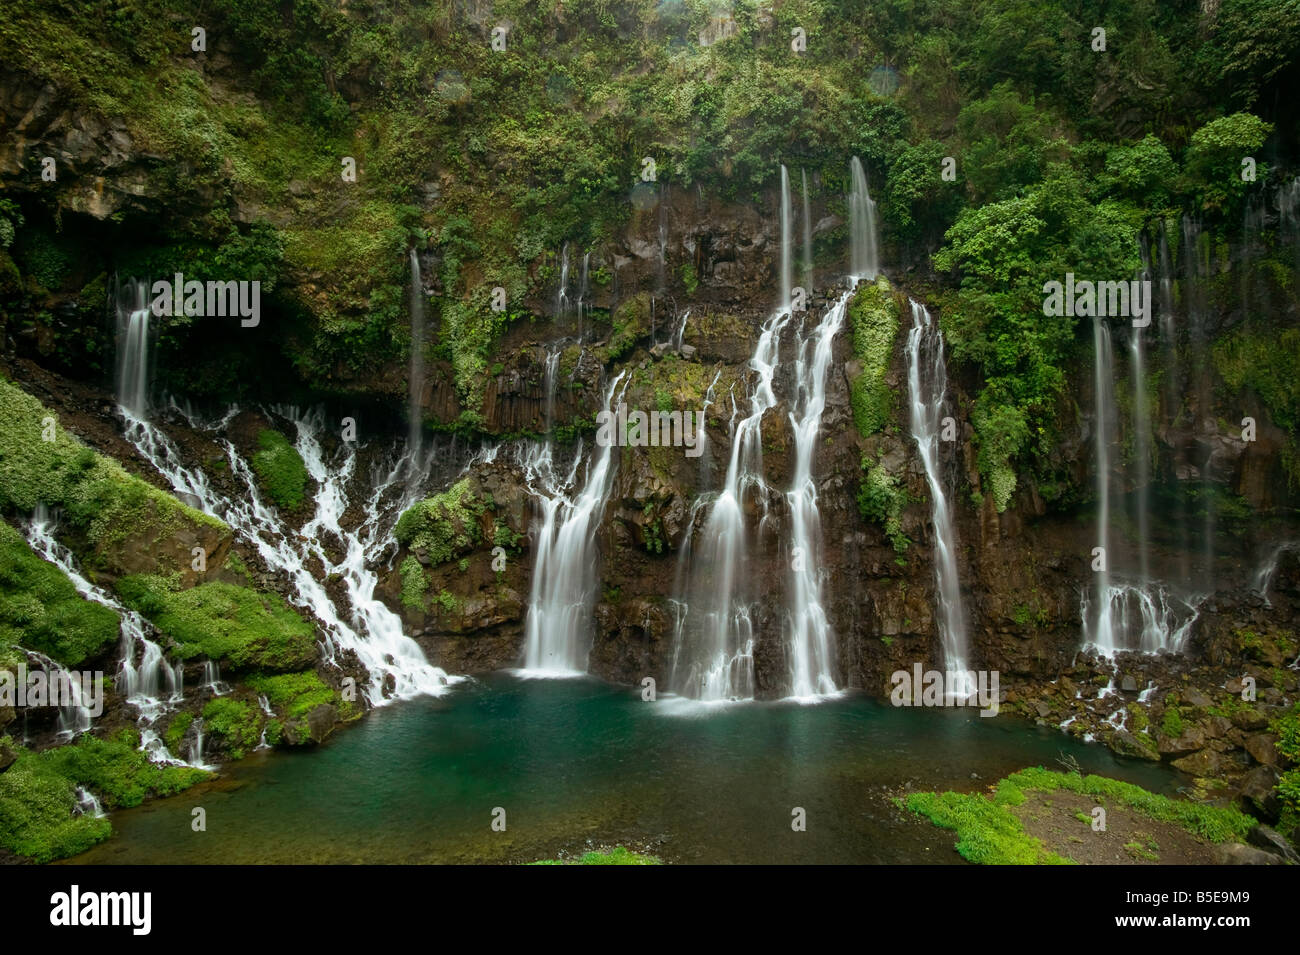 Reunion Island Waterfalls Of Langevin Reunion Island Stock Photo 20598601 Alamy